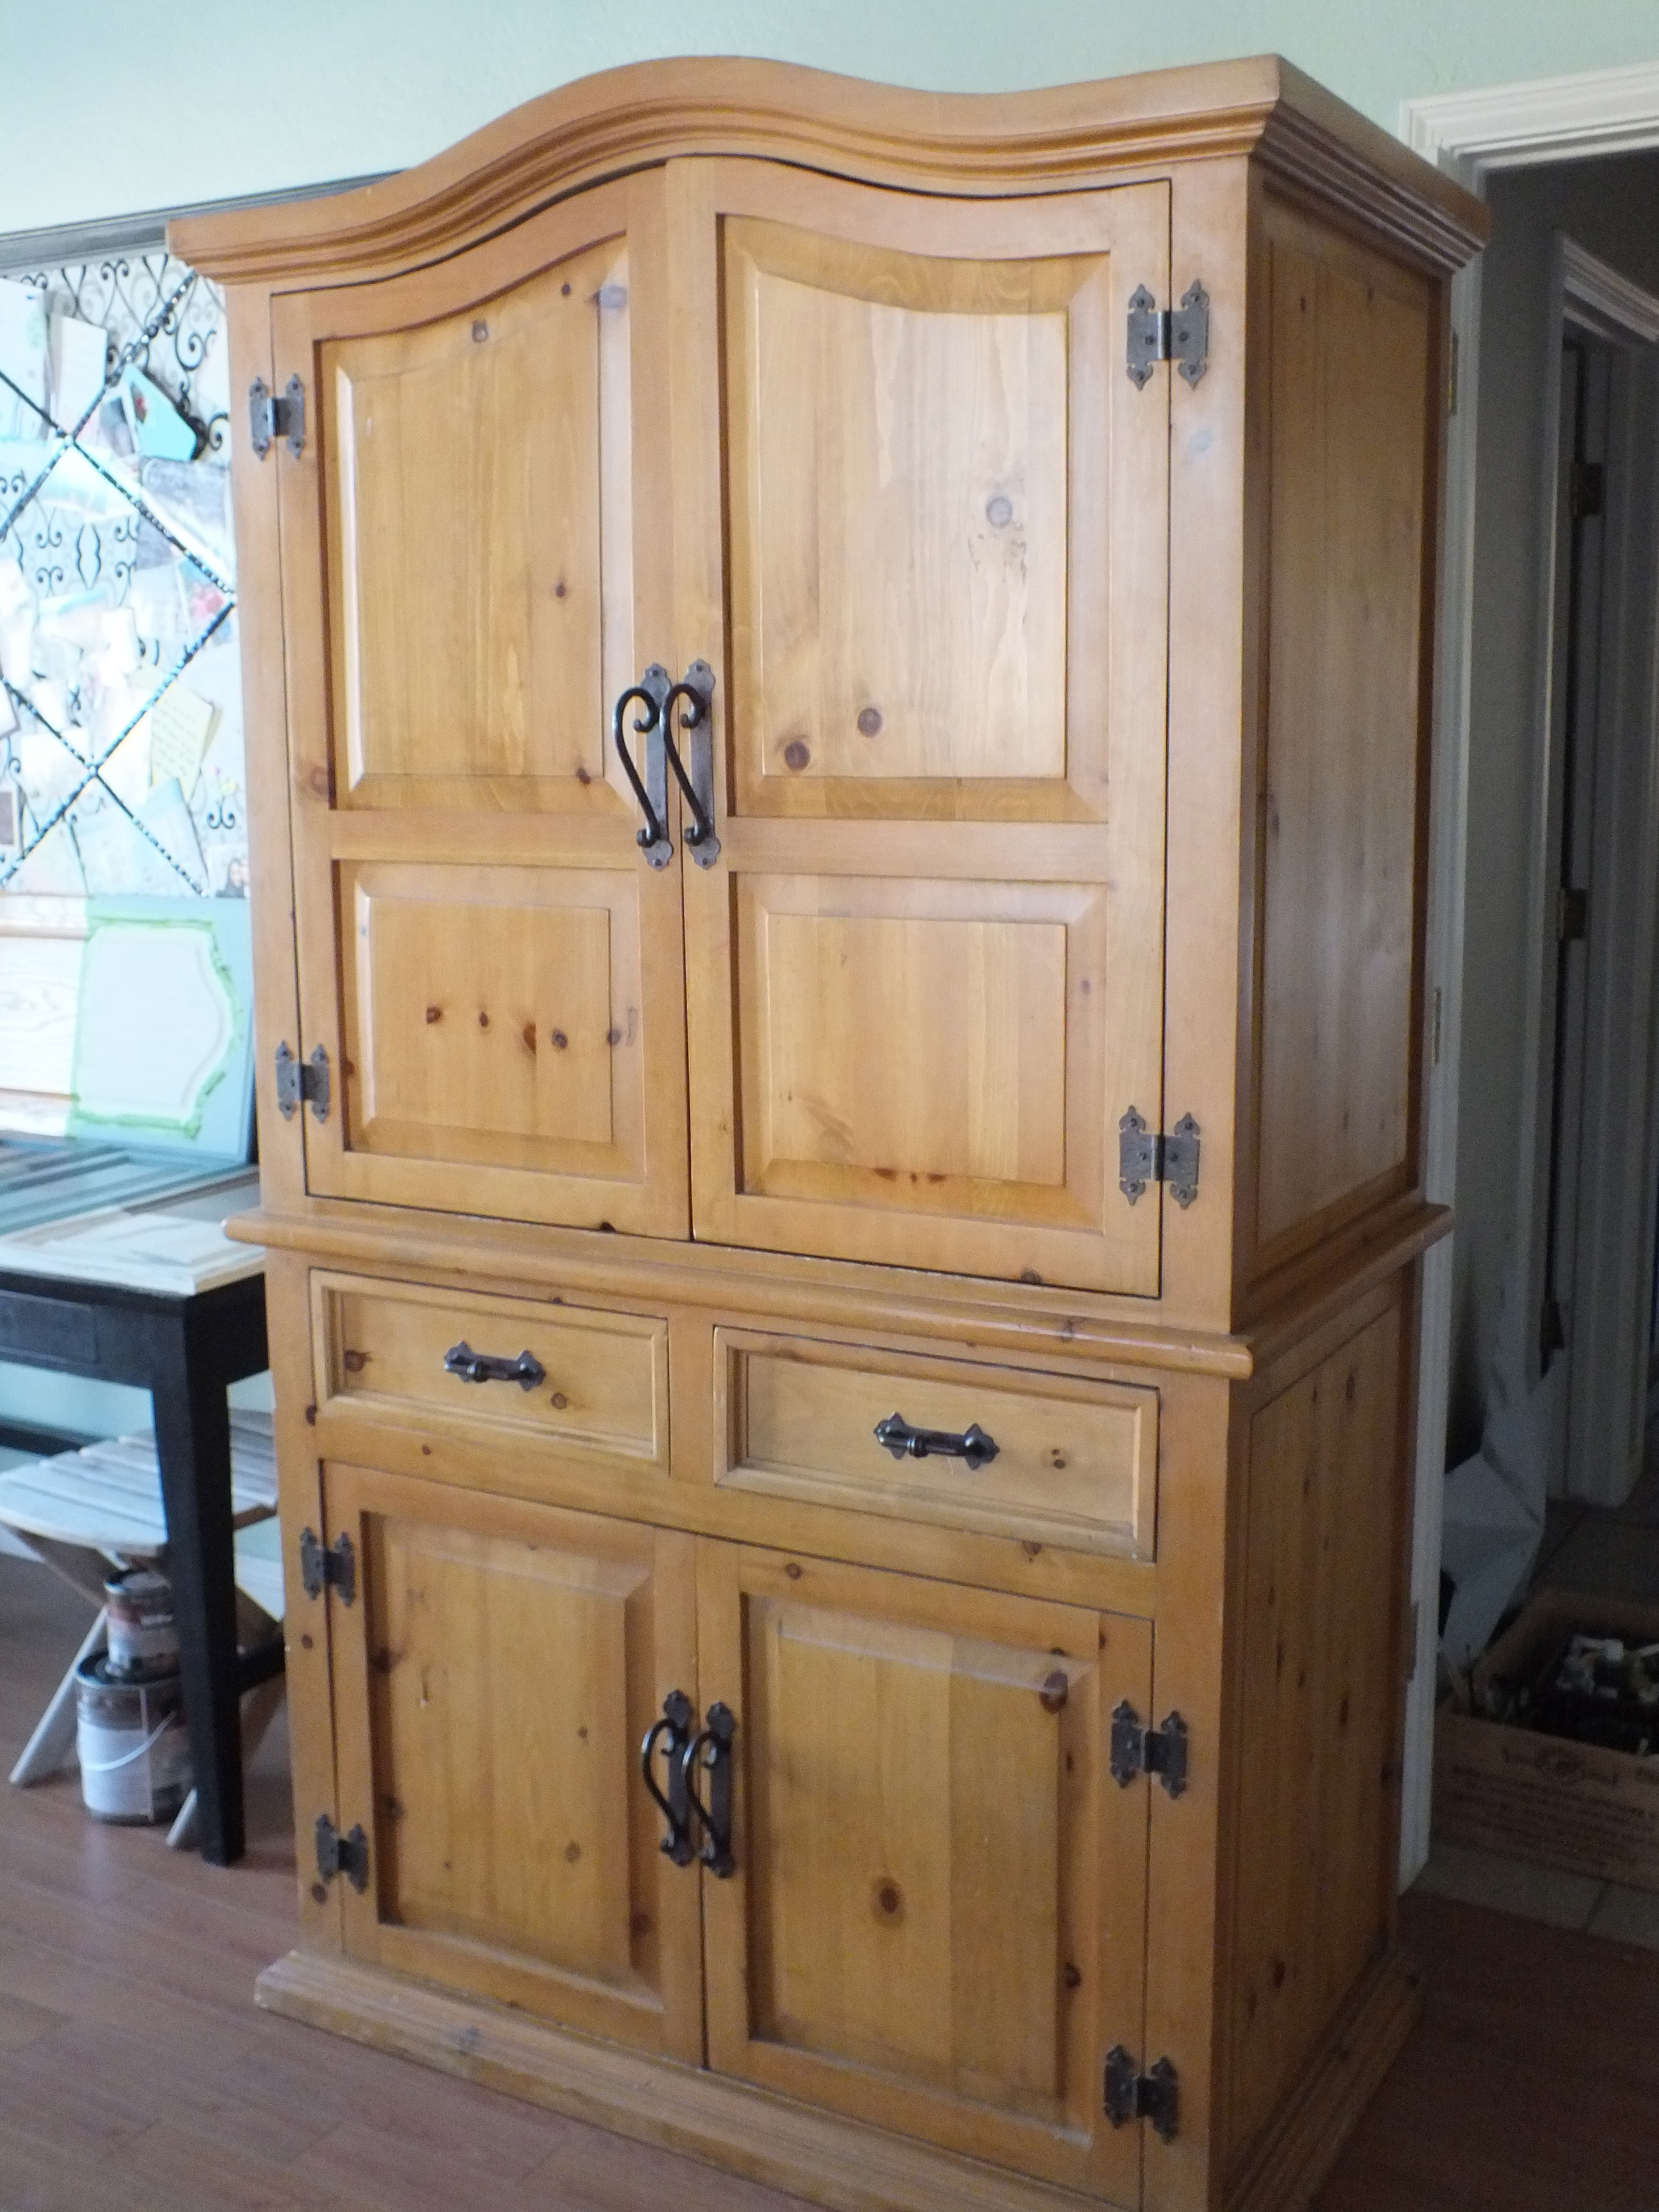 Tired Of The Rustic Pine Look??? Armoire Facelift